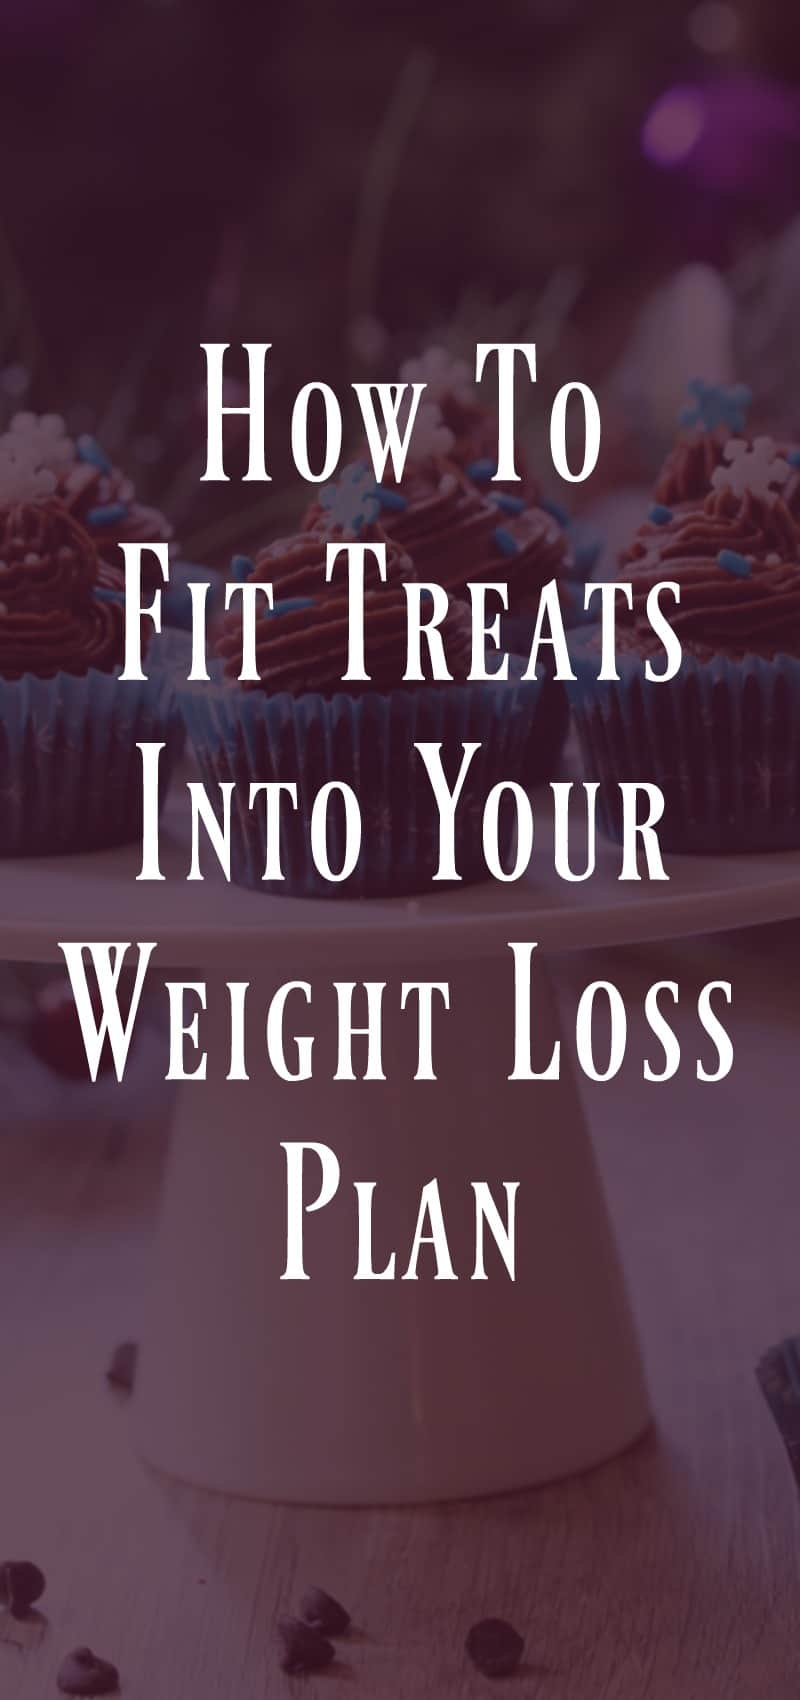 How to fit treats into your weight loss plan